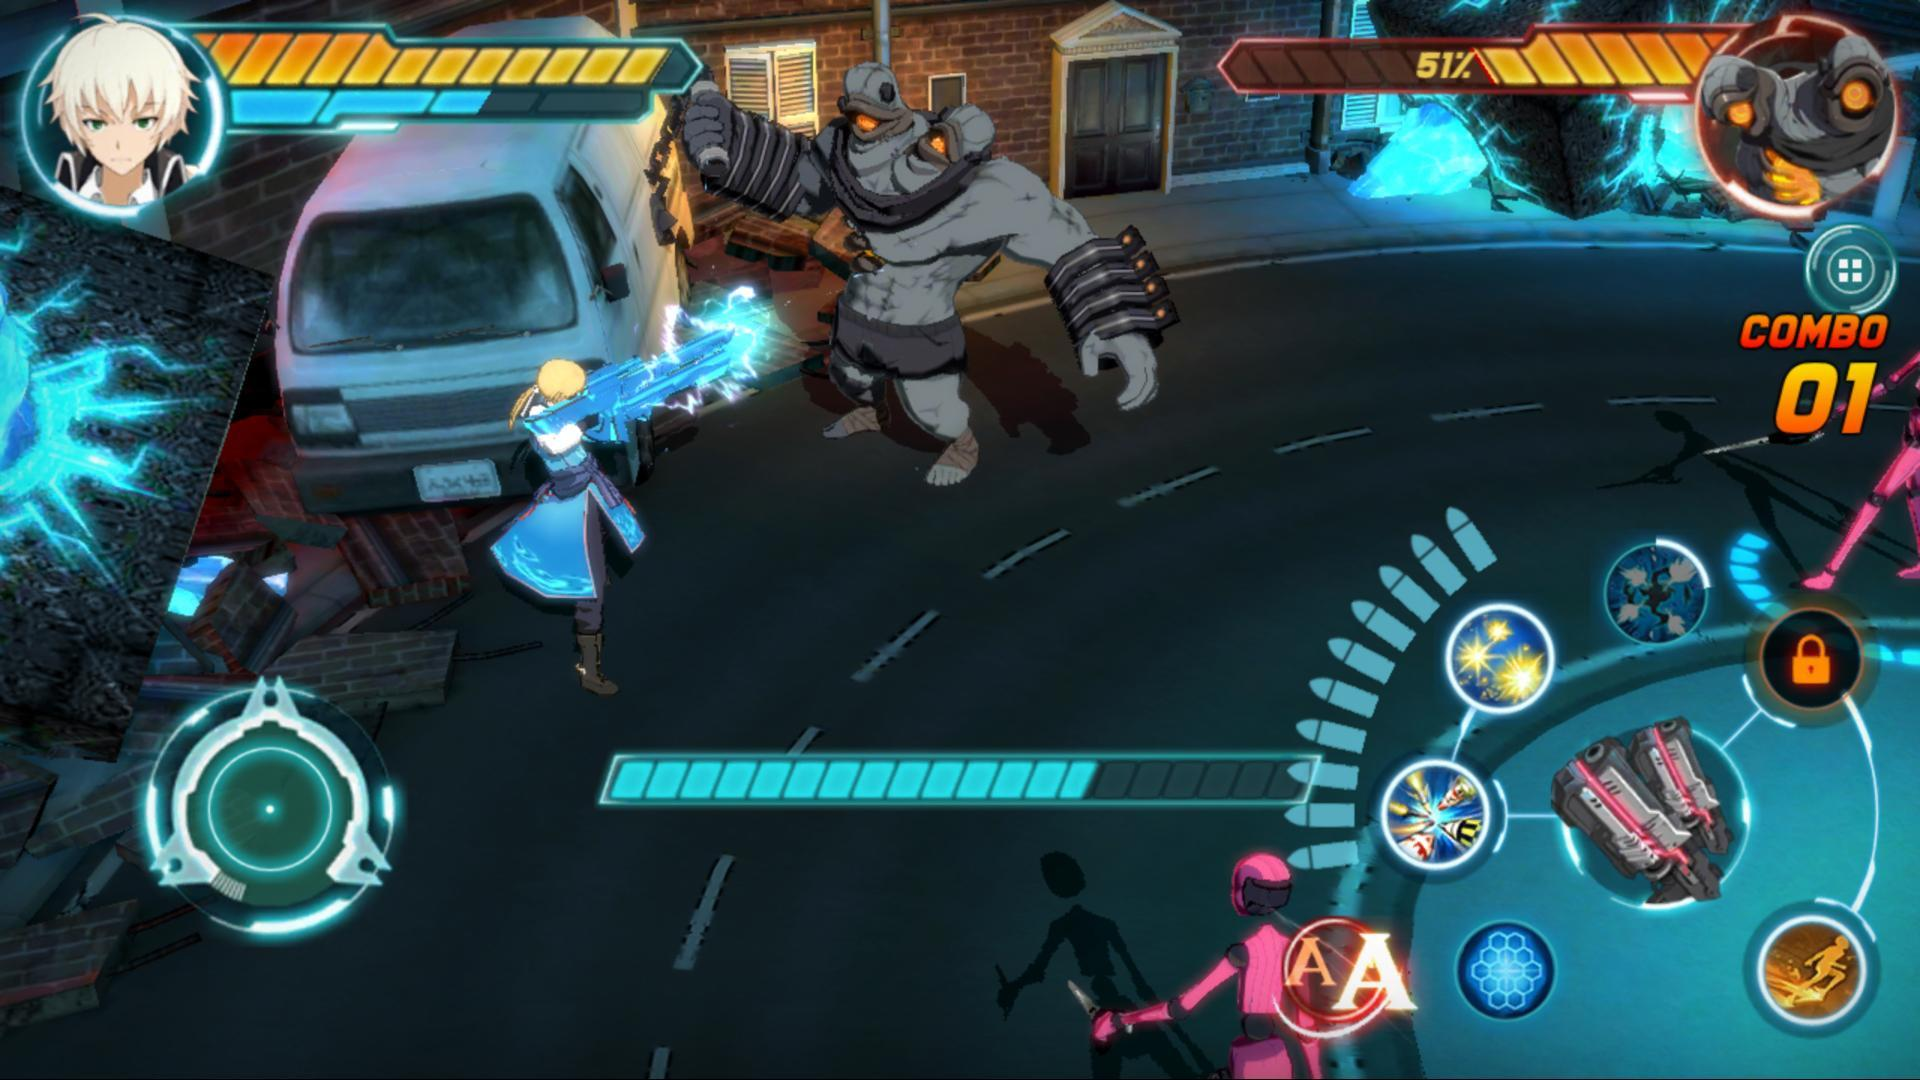 Soulworker Anime Legends For Android Apk Download